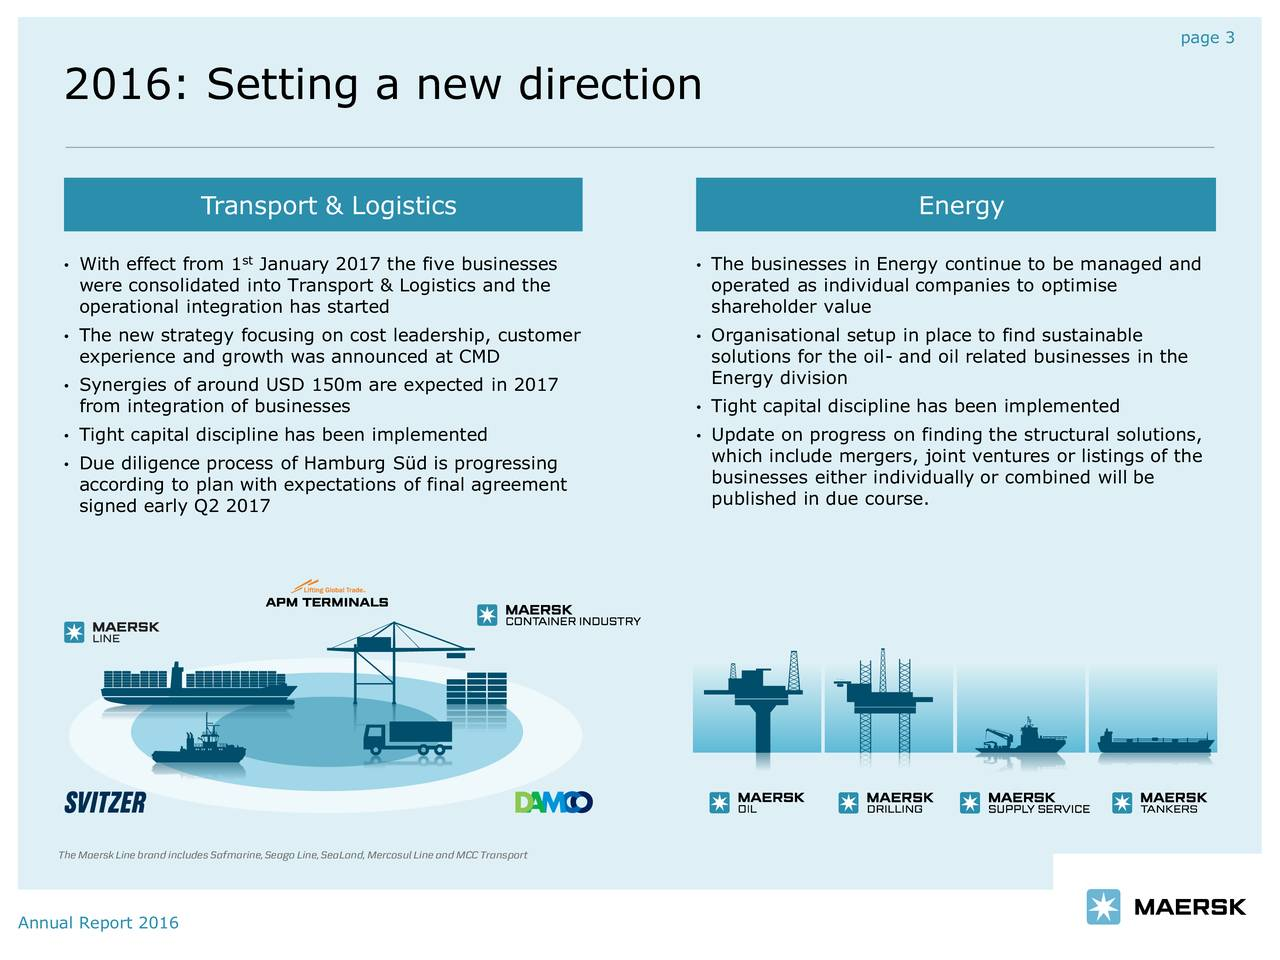 2016: Setting a new direction Transport & Logistics Energy With effect from 1 stJanuary 2017 the five businesses  The businesses in Energy continue to be managed and were consolidated into Transport & Logistics and the operated as individual companies to optimise operational integration has started shareholder value The new strategy focusing on cost leadership, customer  Organisational setup in place to find sustainable experience and growth was announced at CMD solutions for the oil- and oil related businesses in the Energy division Synergies of around USD 150m are expected in 2017 from integration of businesses  Tight capital discipline has been implemented Tight capital discipline has been implemented  Update on progress on finding the structural solutions, Due diligence process of Hamburg Sd is progressing which include mergers, joint ventures or listings of the businesses either individually or combined will be according to plan with expectations of final agreement published in due course. signed early Q2 2017 TheMaerskLinebrand includesSafmarine,SeagoLine,SeaLand,MercosulLineand MCCTransport Annual Report 2016